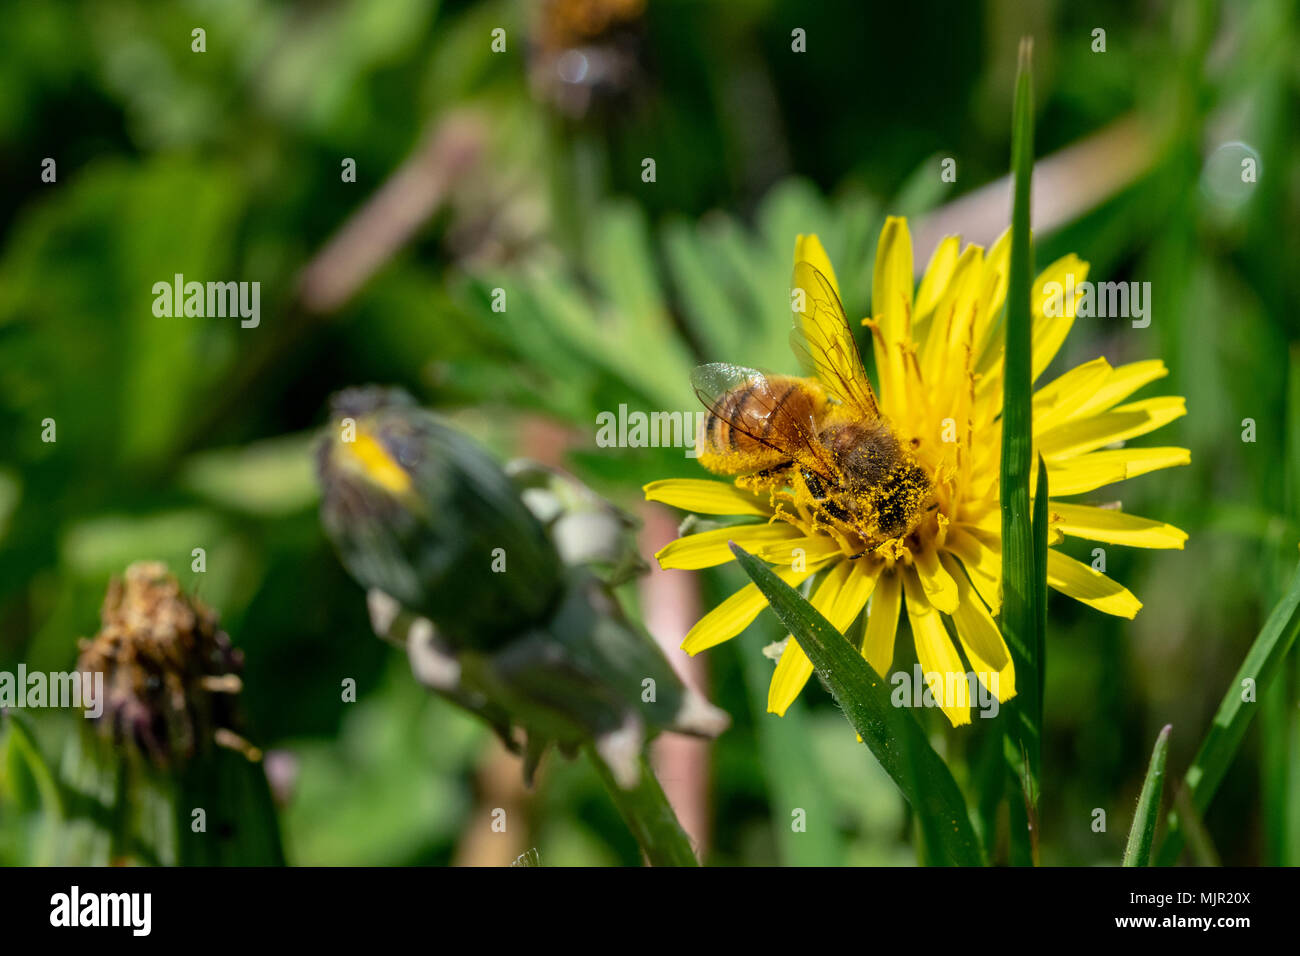 Ware hertfordshire uk saturday 5th may 2018 hot spring bank hot spring bank holiday with fields of wild flowers and honey bees collect nectar pollen from dandelions credit andi edwardsalamy live news mightylinksfo